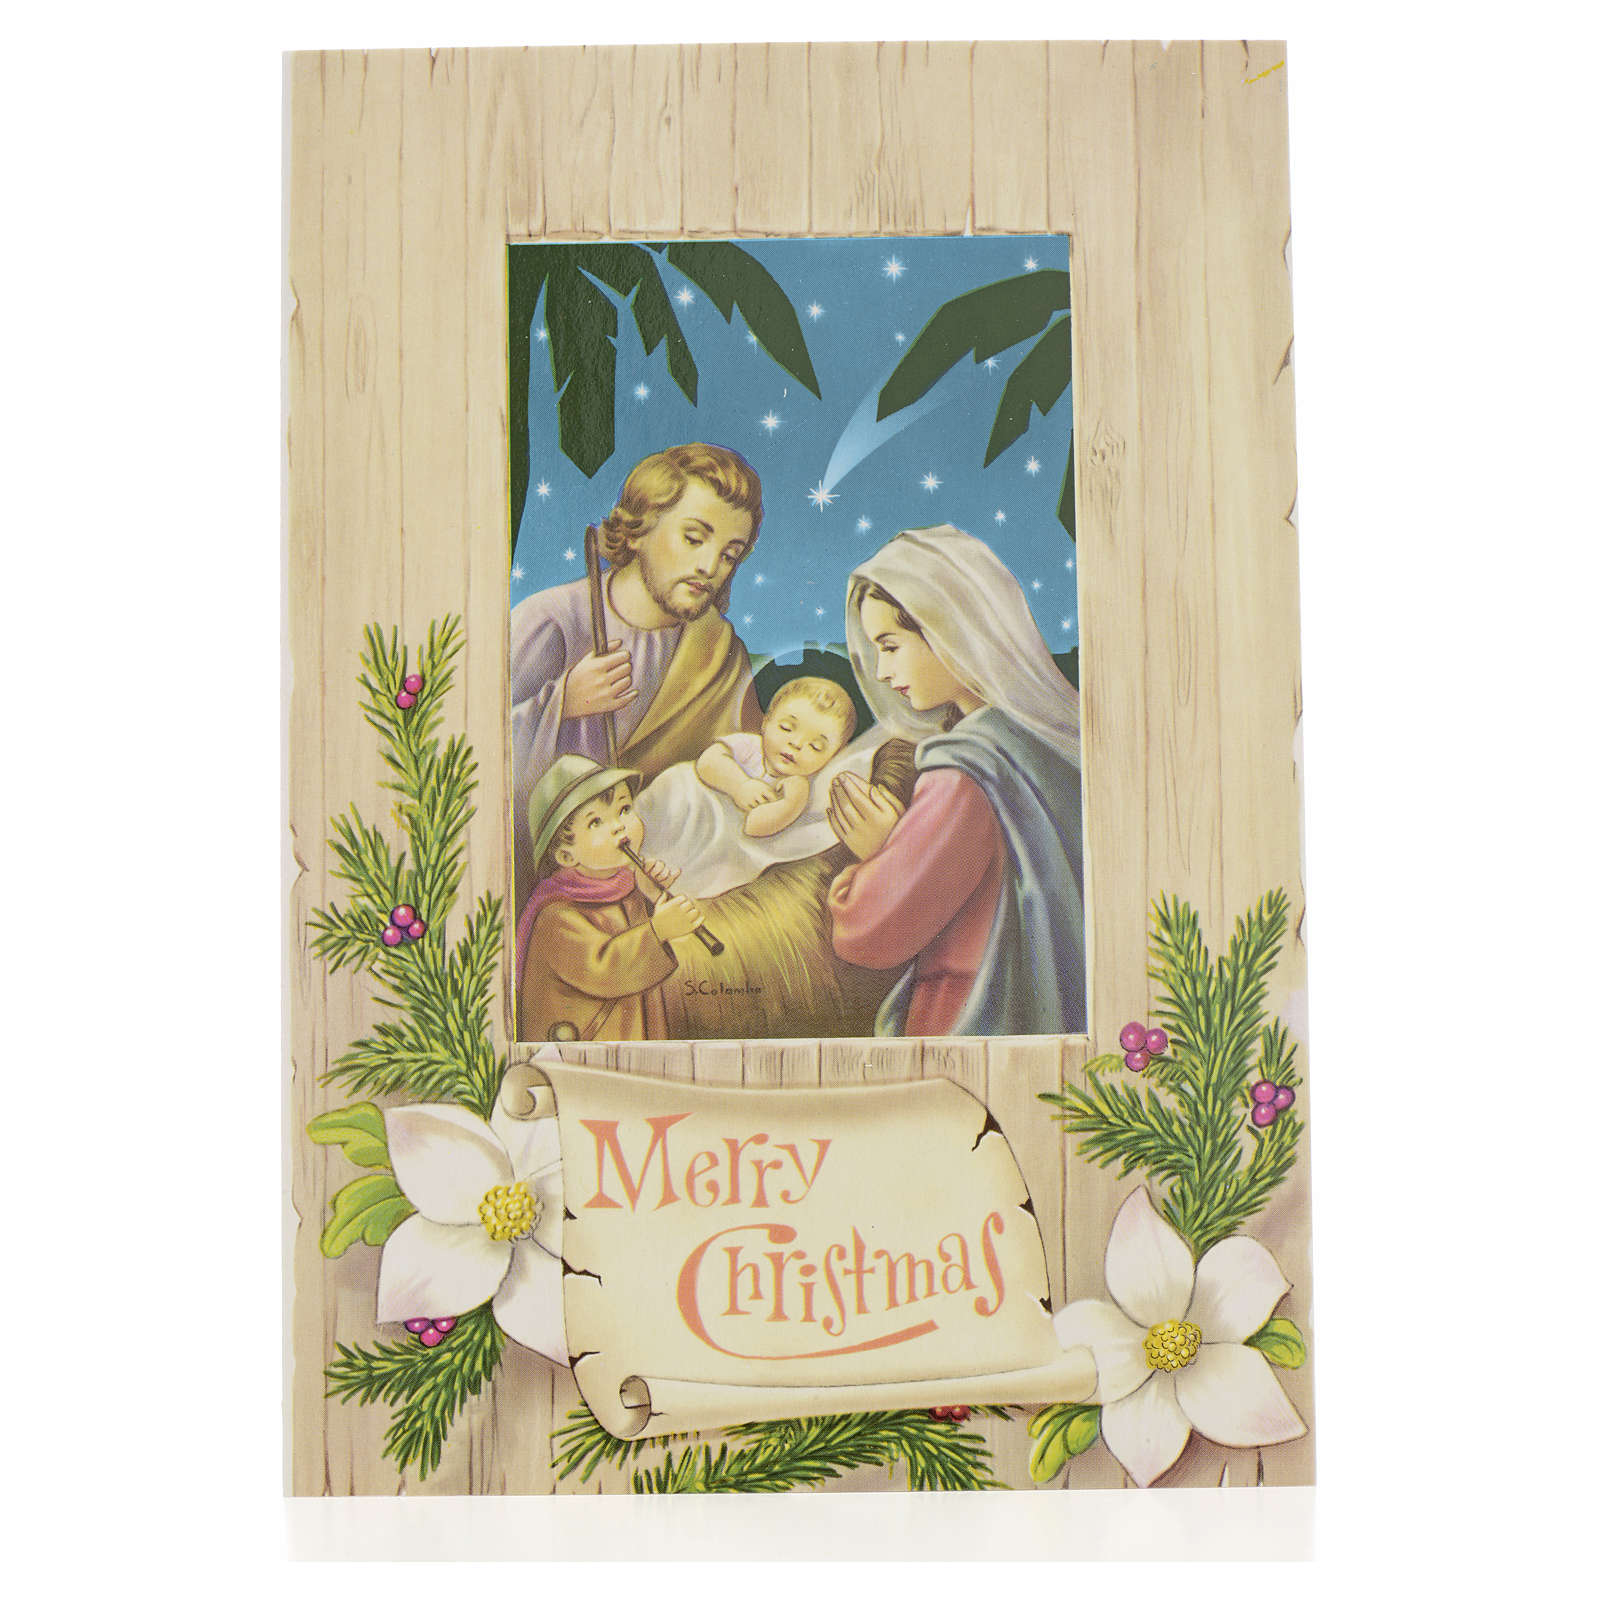 Christmas Card with Merry Christmas wishes 4